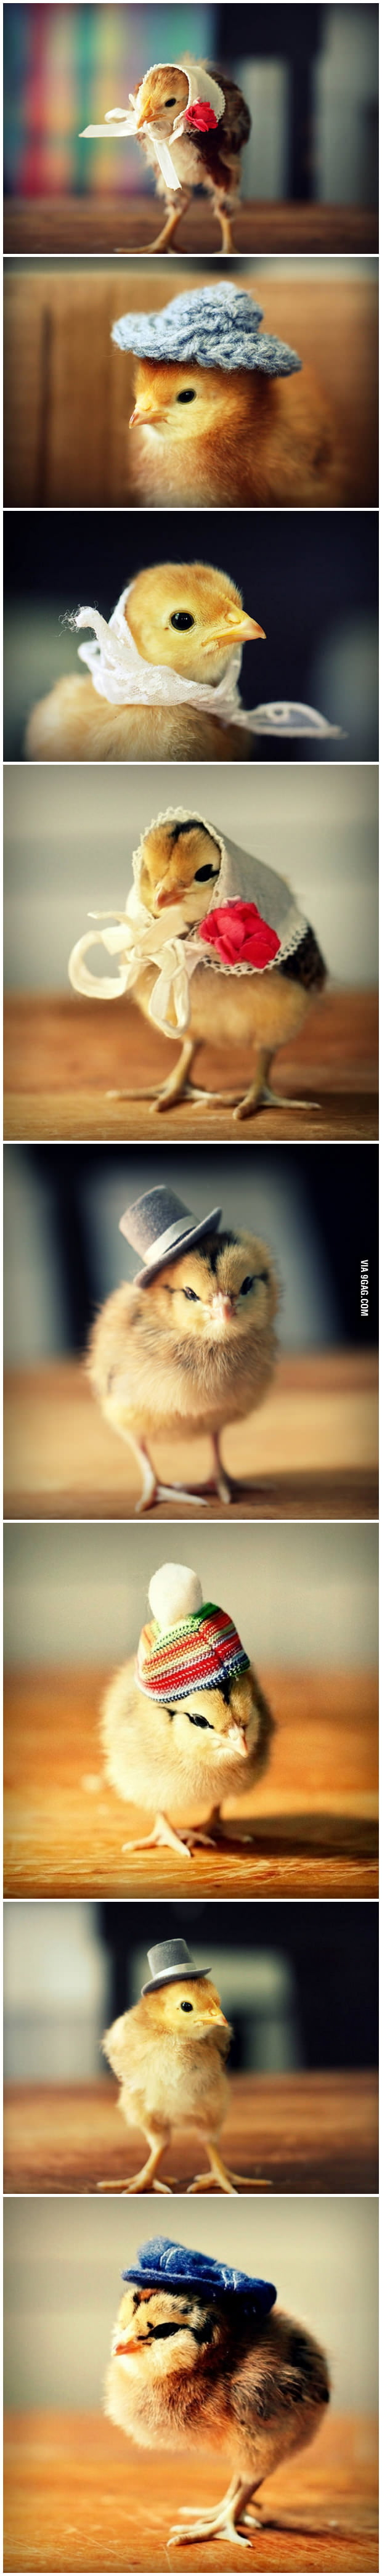 Naked chicks in hats